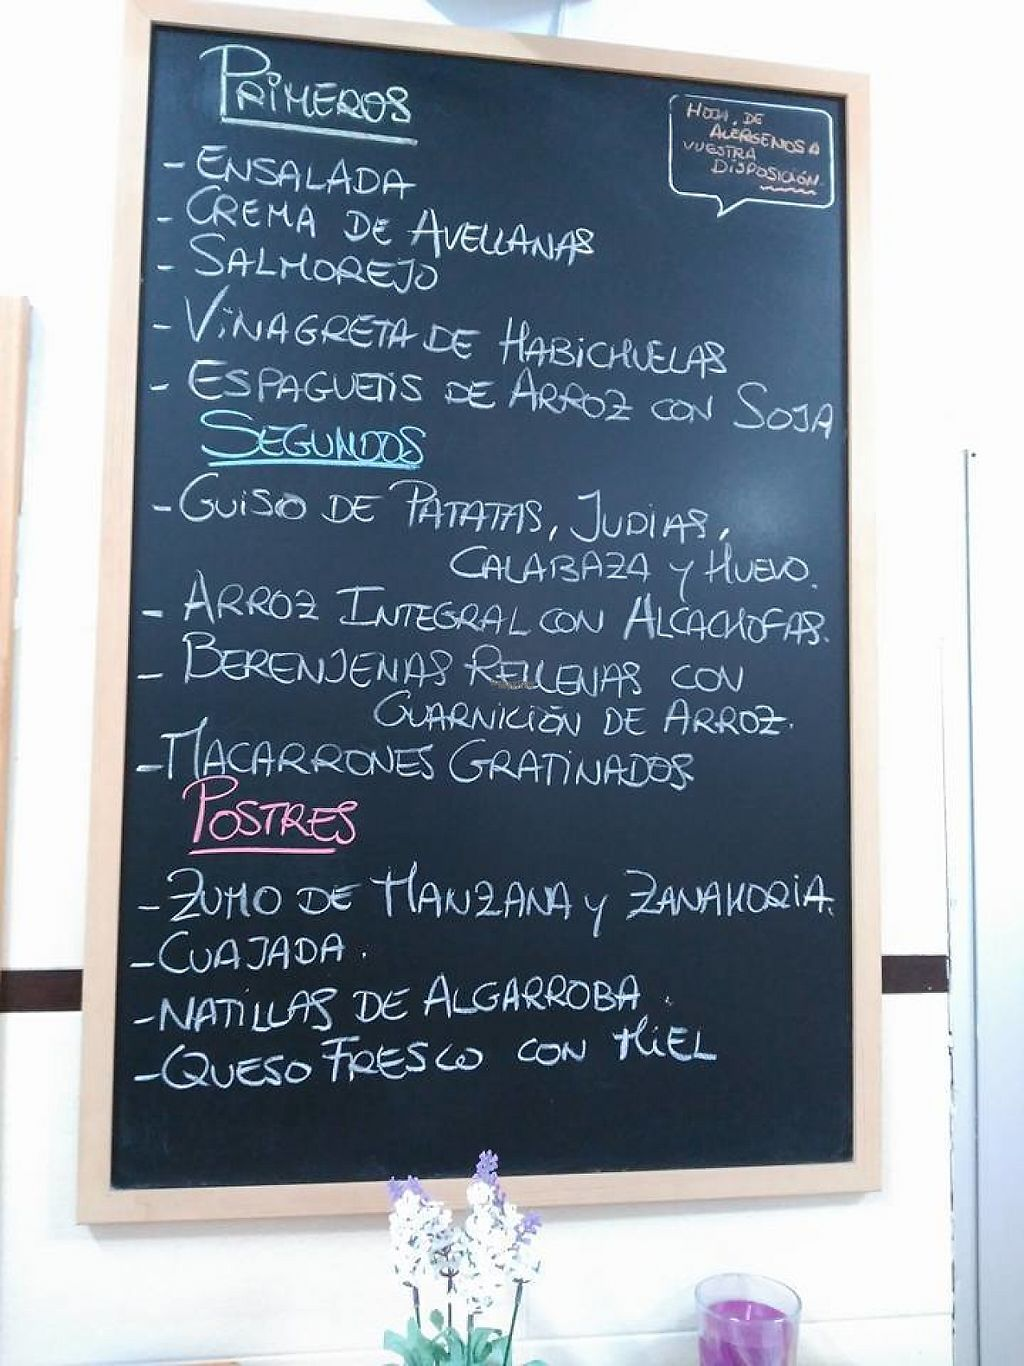 """Photo of Comedor Vegetariano Elche  by <a href=""""/members/profile/MarioDamianSoler"""">MarioDamianSoler</a> <br/>Daily menu <br/> November 14, 2016  - <a href='/contact/abuse/image/39140/190227'>Report</a>"""